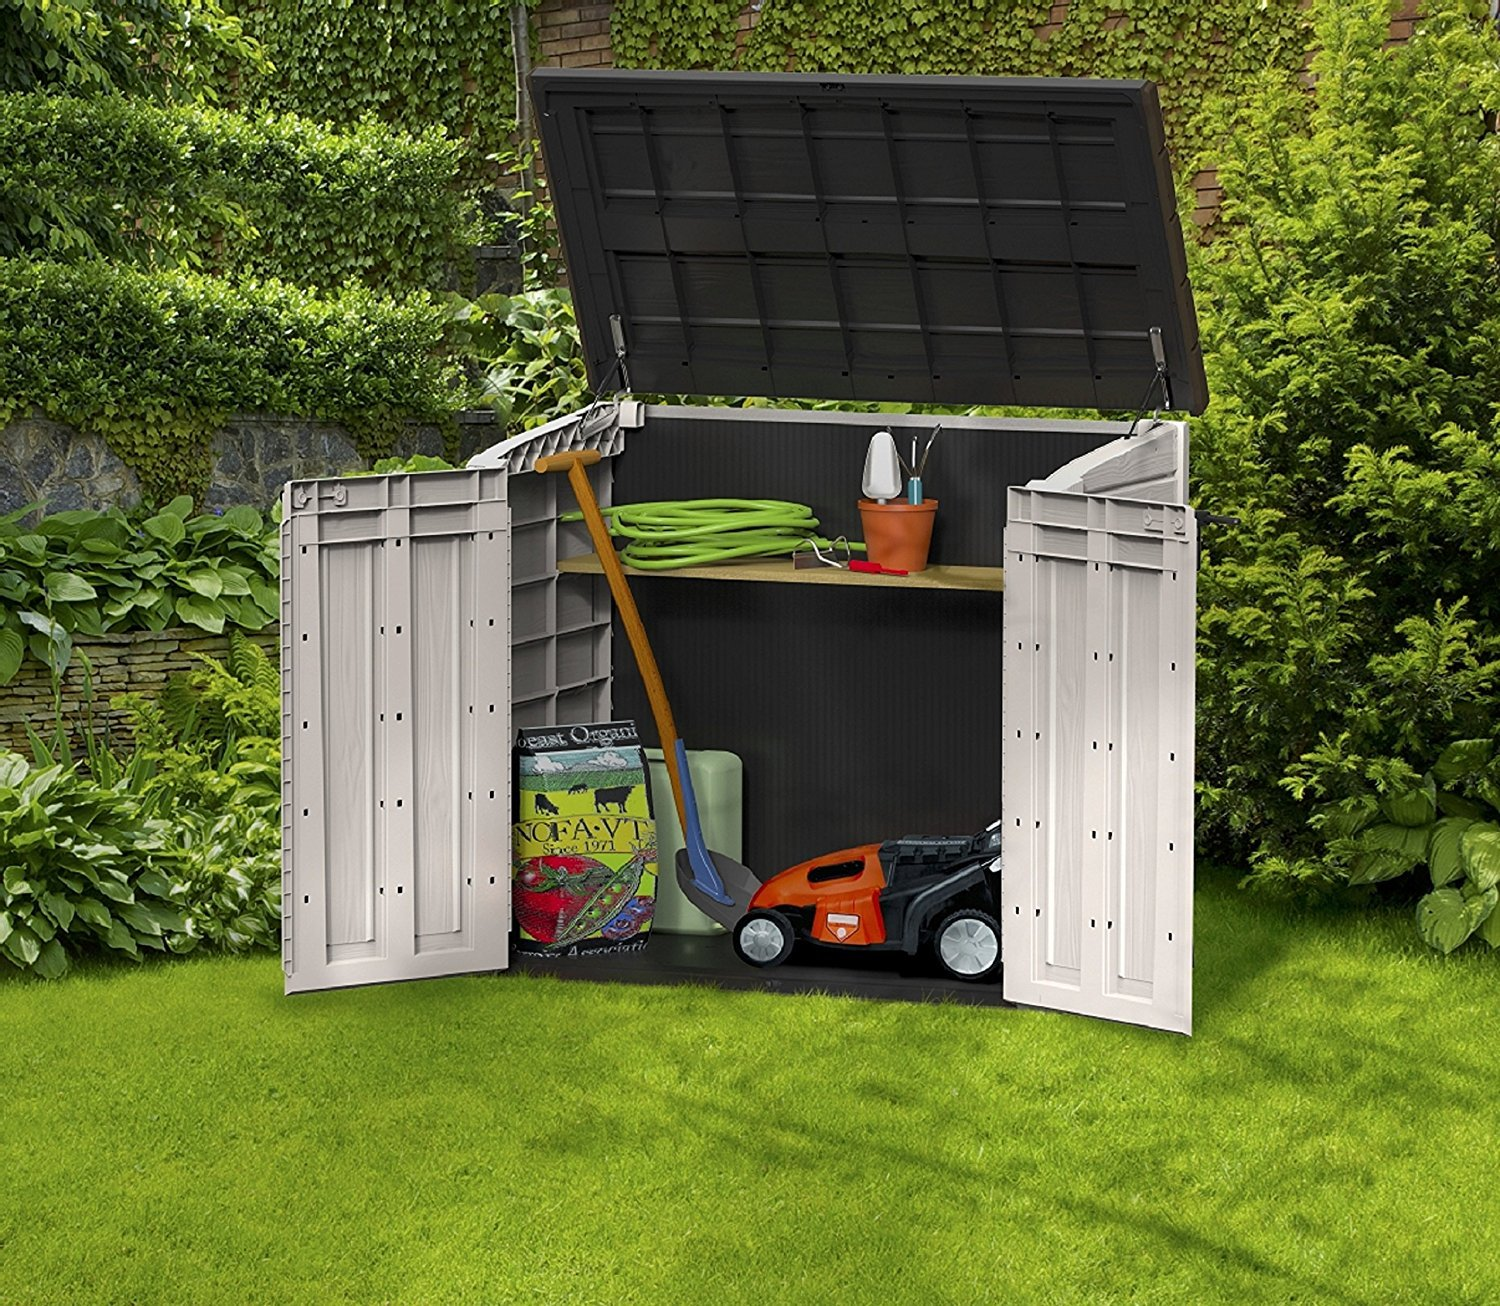 Amazon.com  Keter Store-It-Out MIDI 4.3 x 2.5 Outdoor Resin Horizontal Storage Shed  Portable Storage Shed  Garden u0026 Outdoor & Amazon.com : Keter Store-It-Out MIDI 4.3 x 2.5 Outdoor Resin ... Aboutintivar.Com